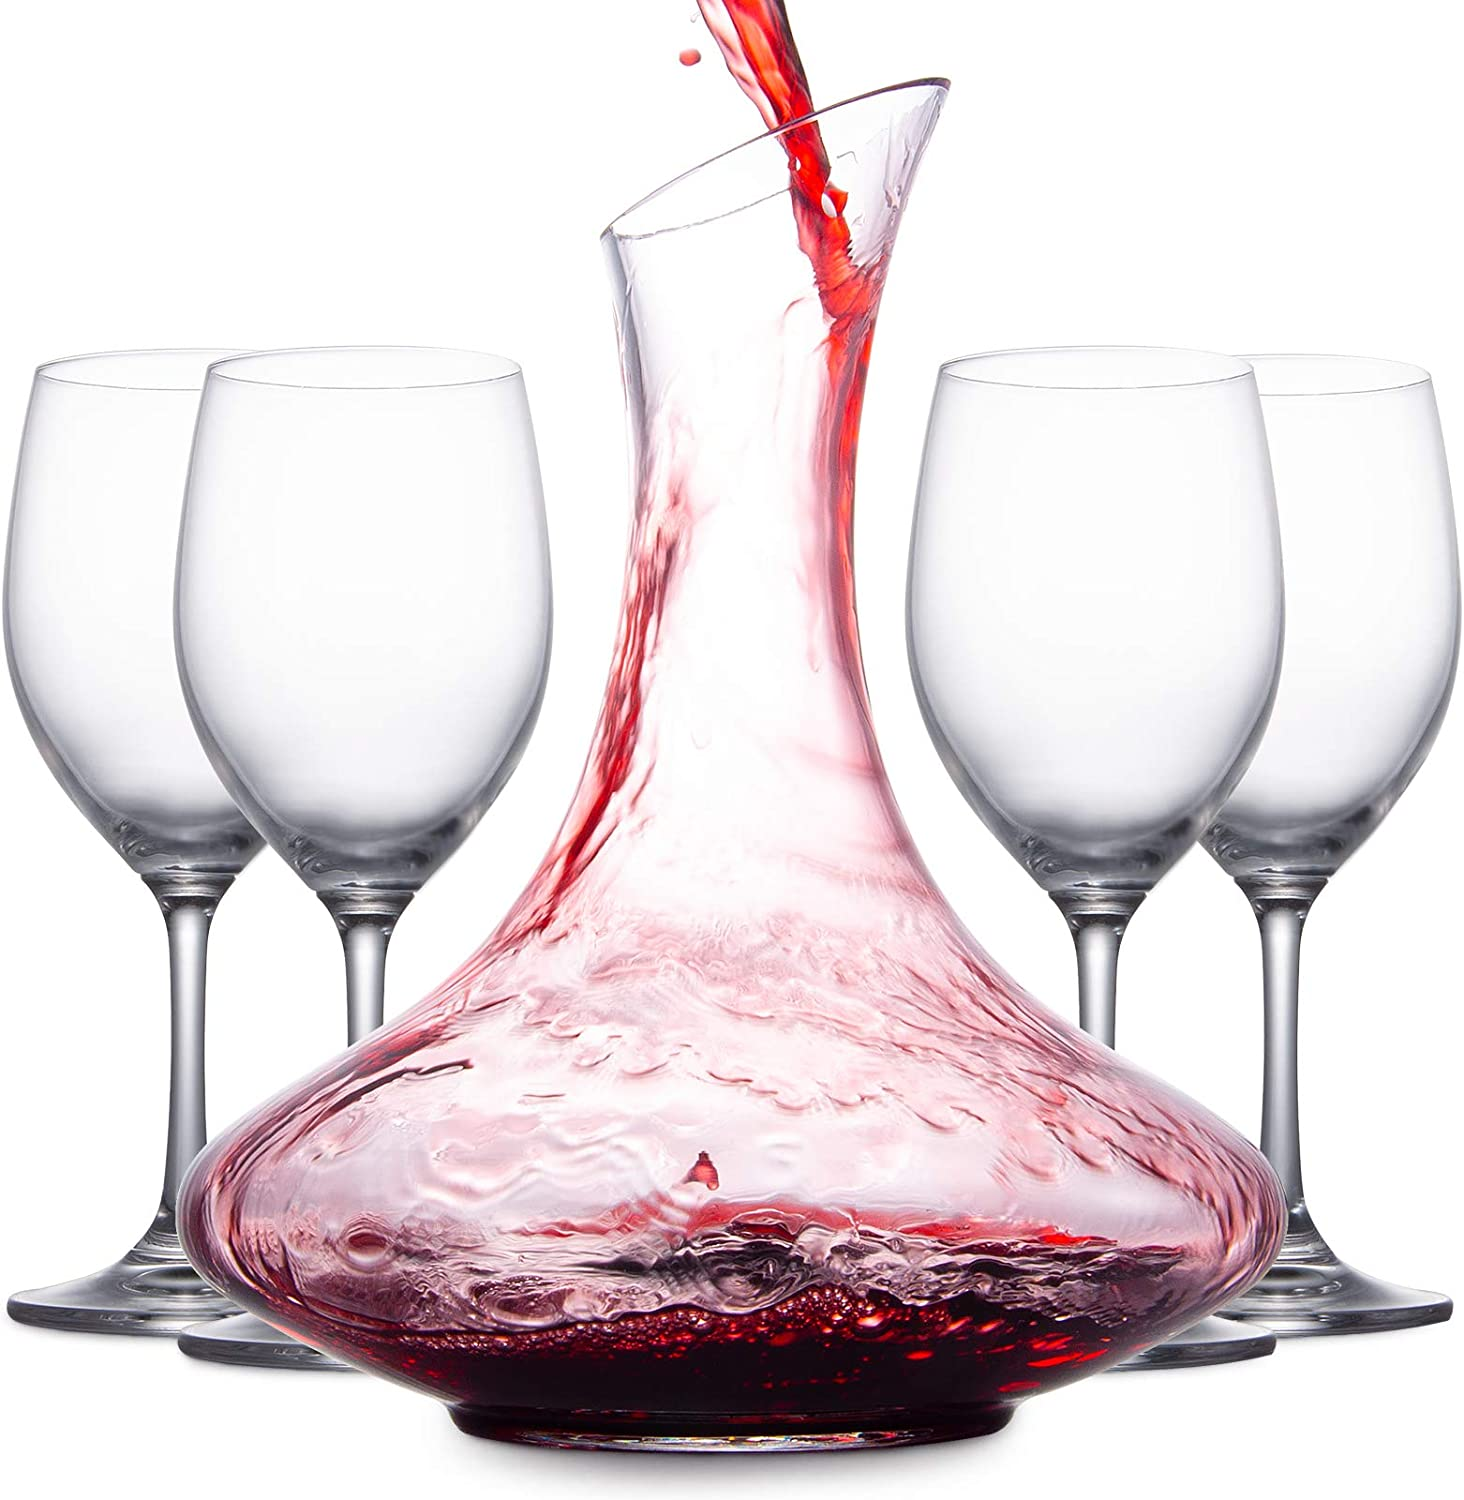 Mafiti 1.8L Wine Aerator Decanter and Carafe with 4 Red Wine Glasses Gifts for Women Men Wine Lovers